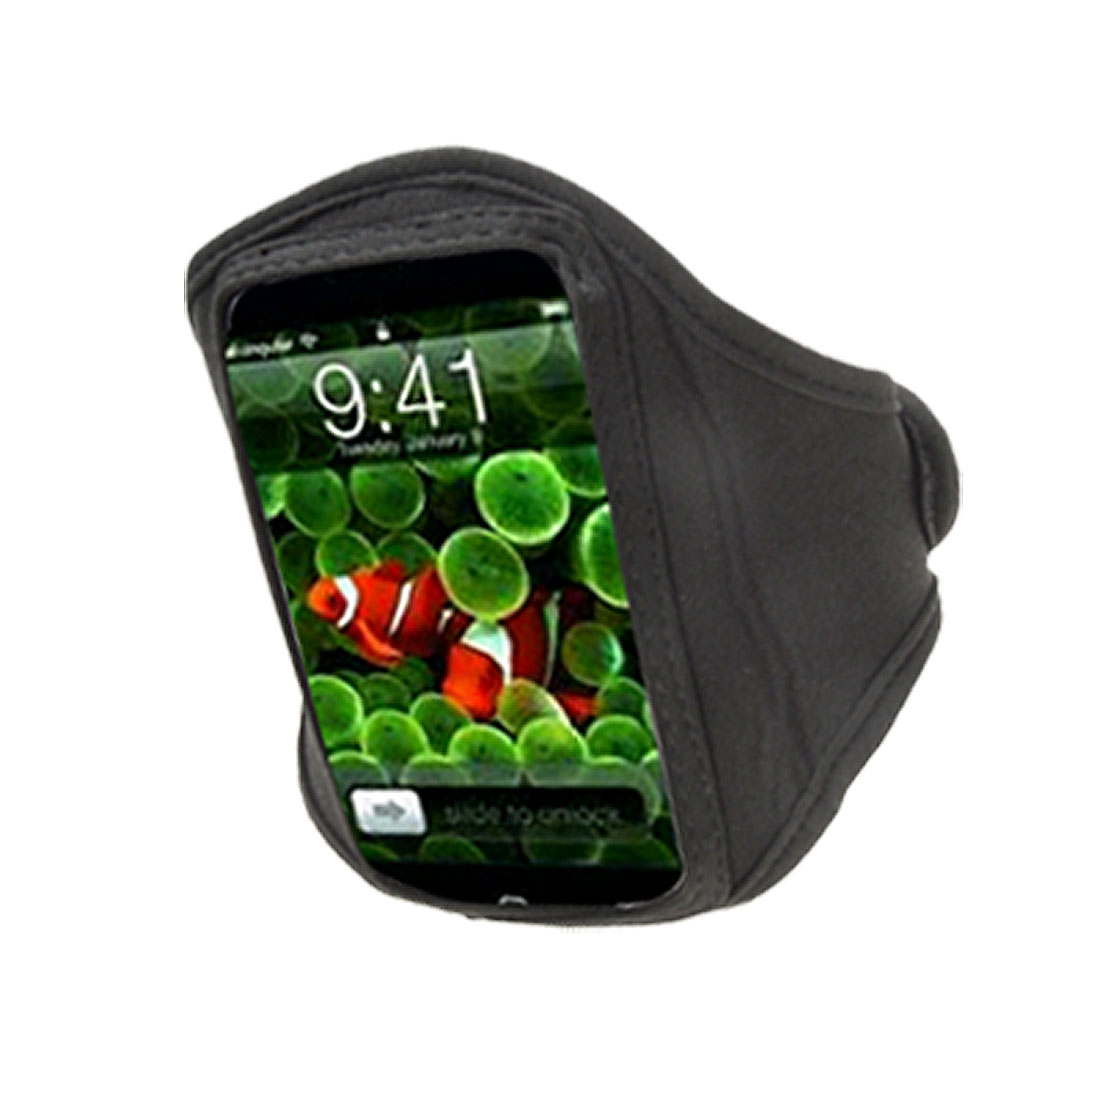 Adjustable Armband Holder Black for iPhone 3G 3GS